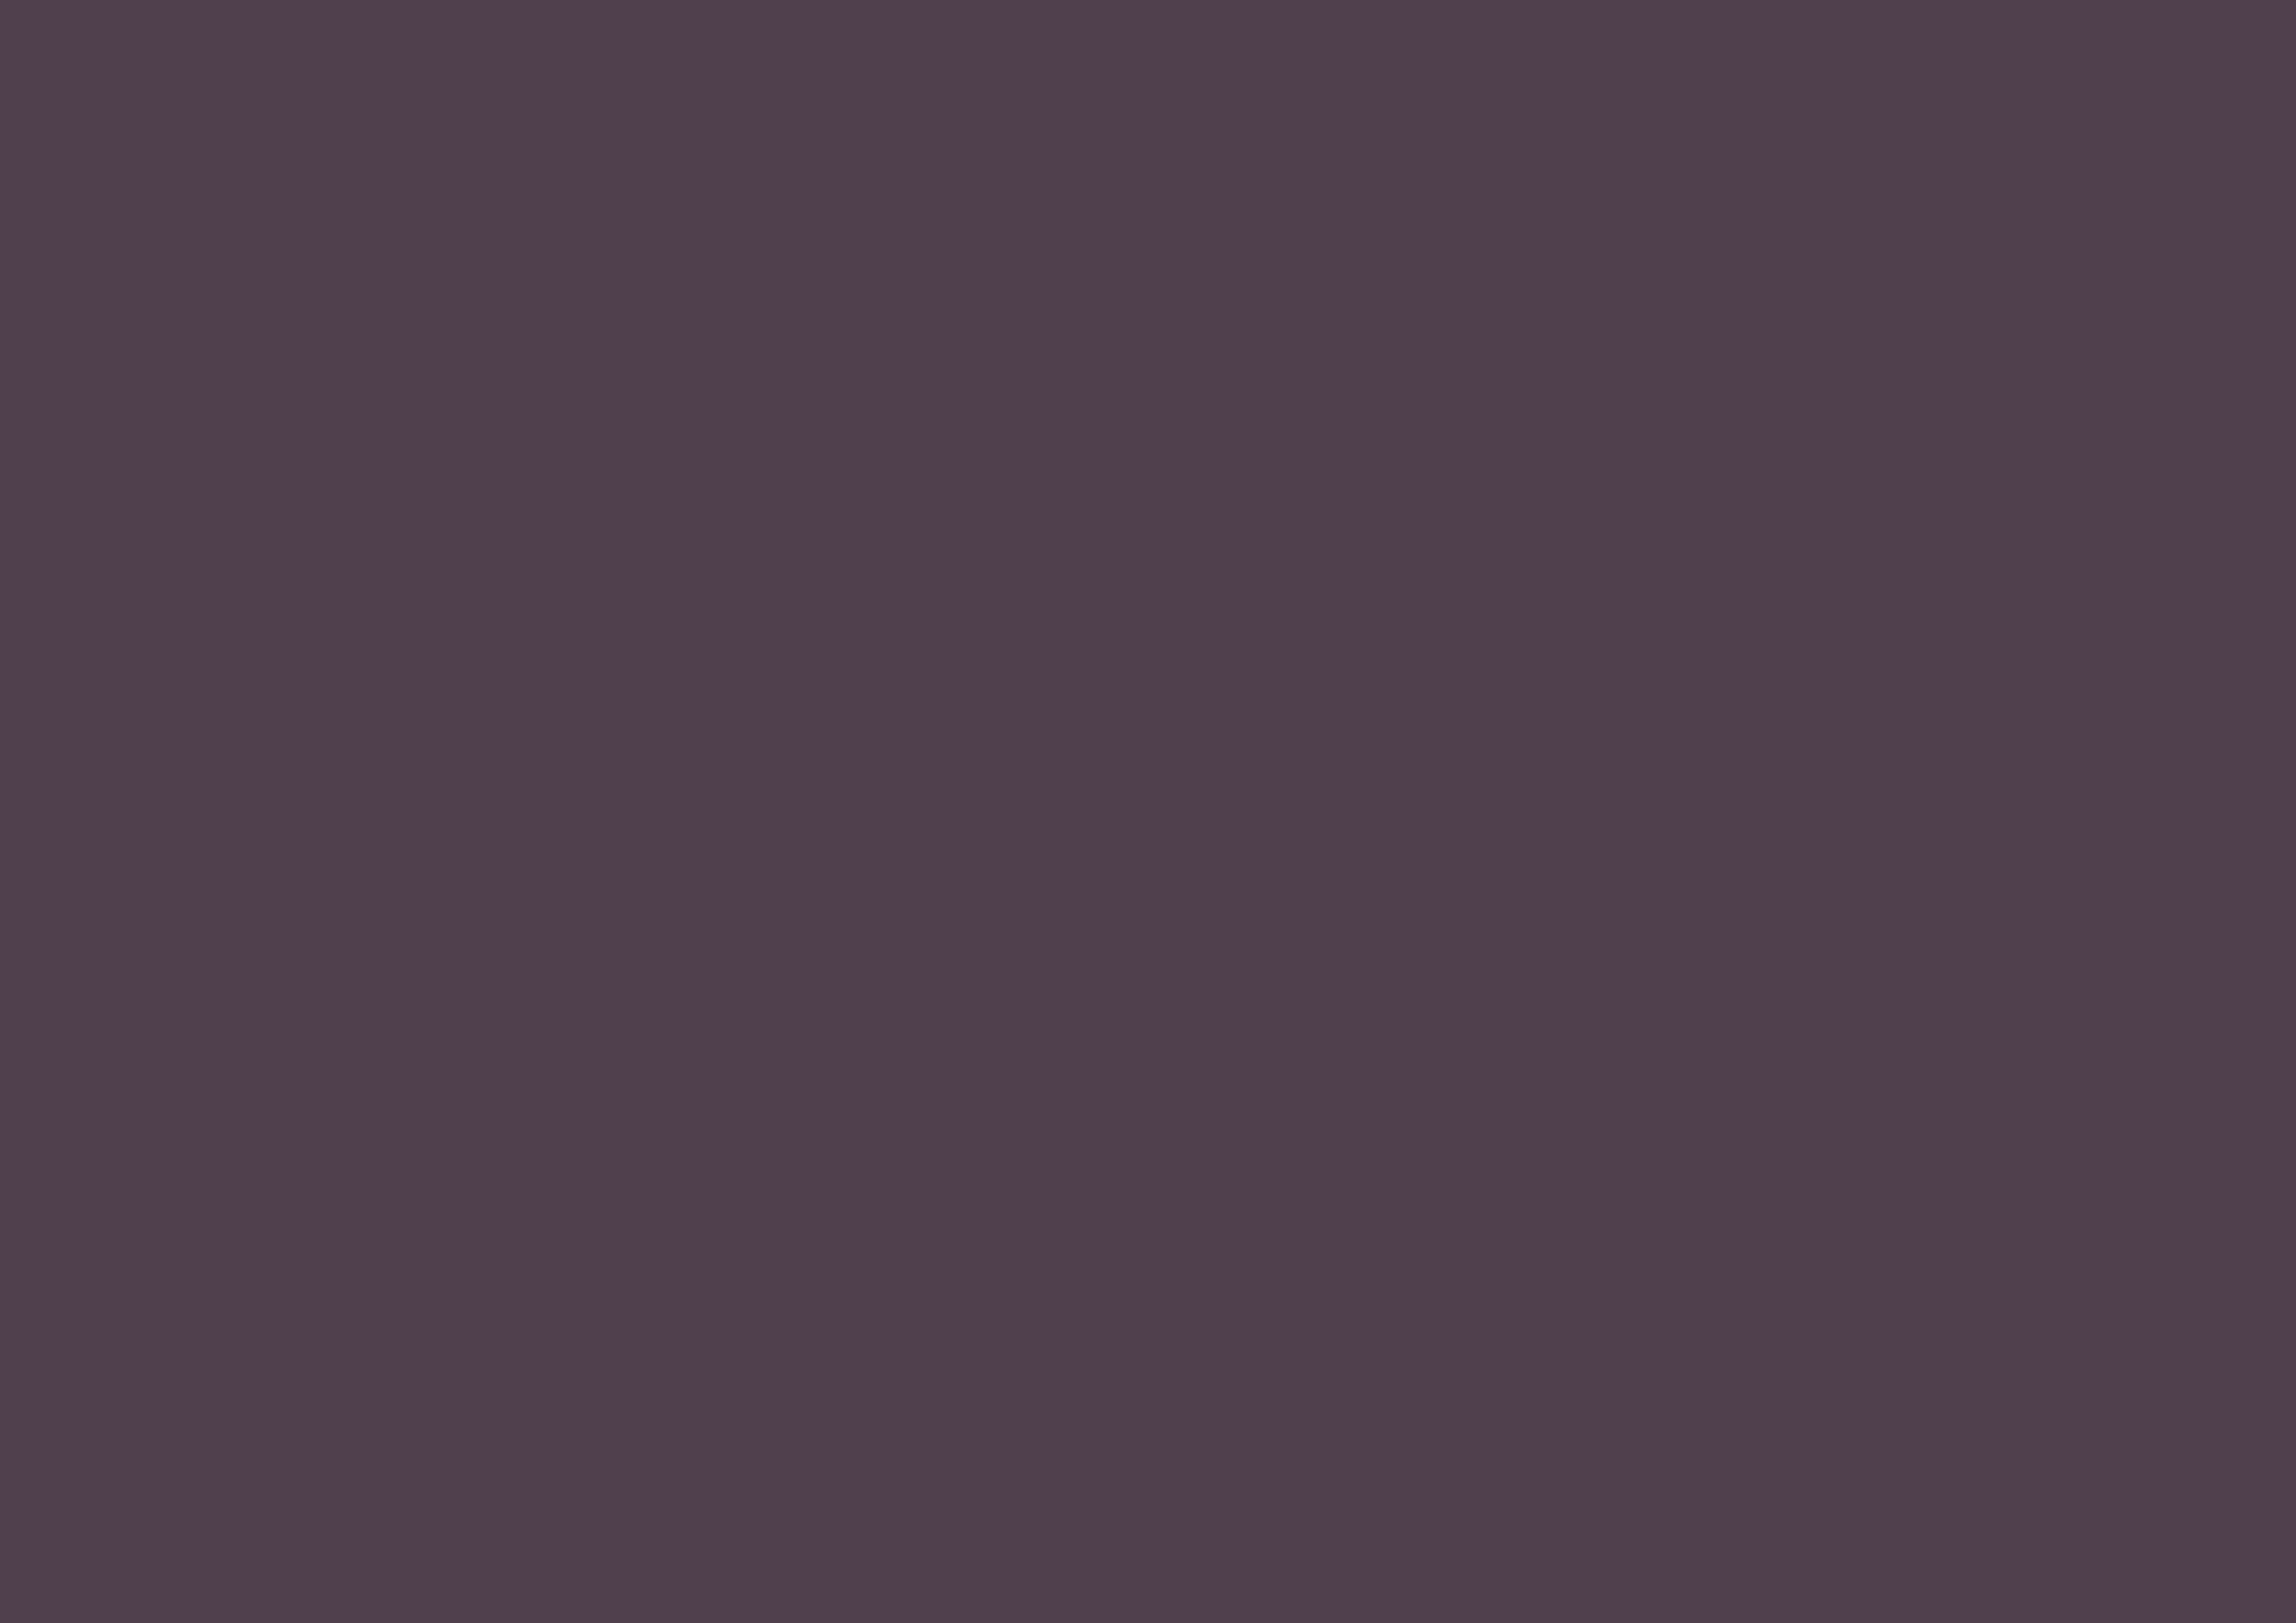 3508x2480 Purple Taupe Solid Color Background